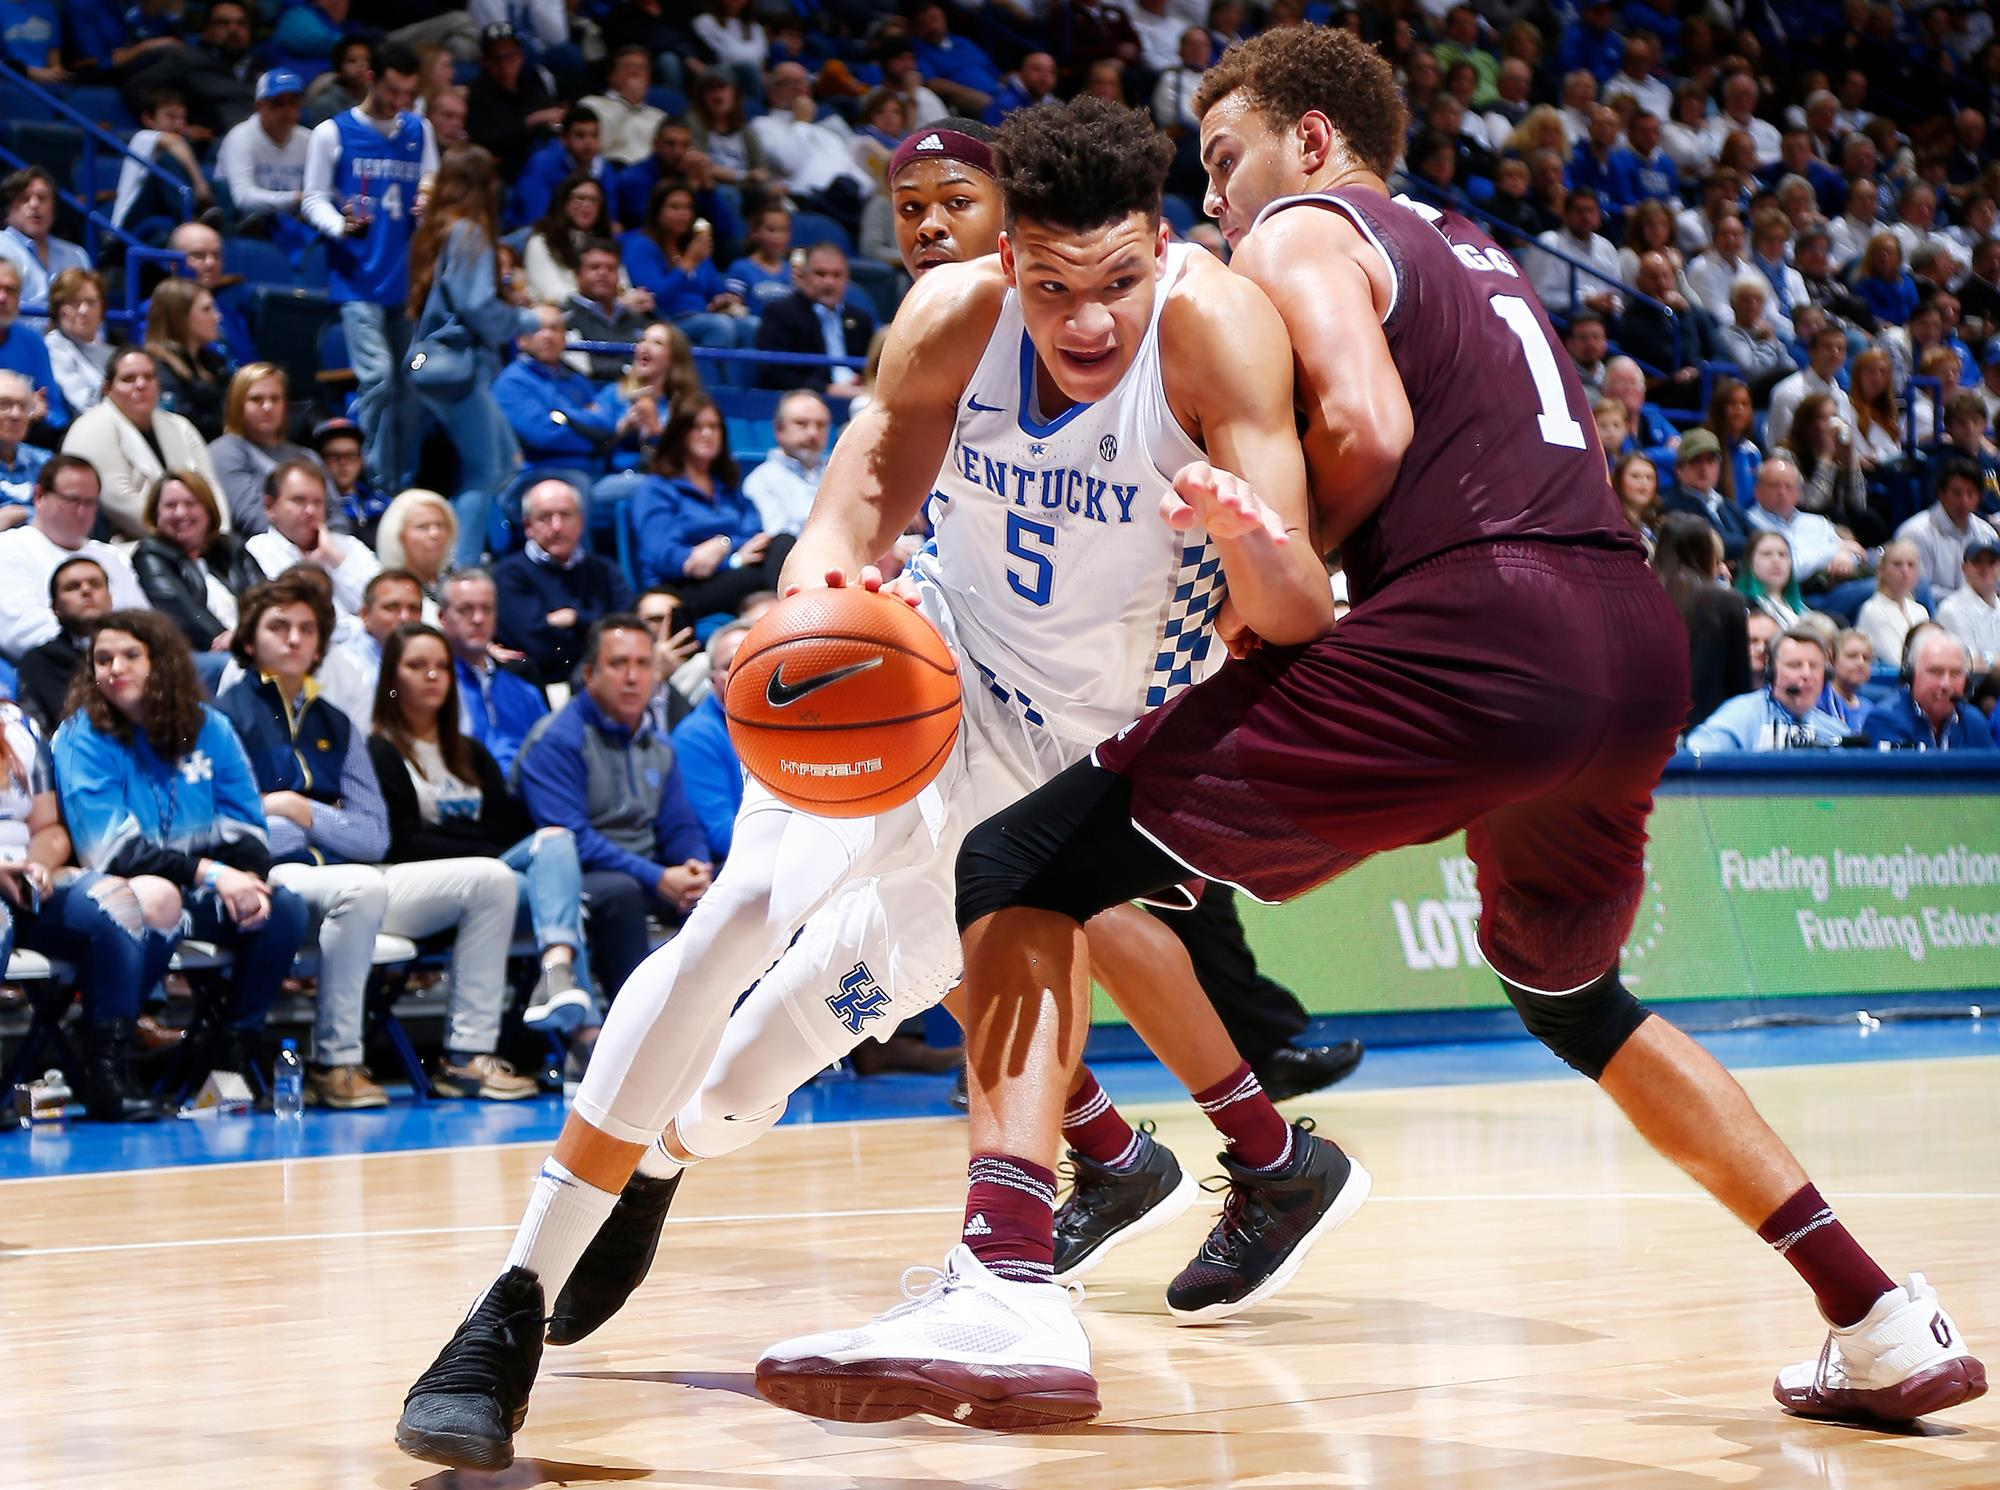 UK's Knox named to Olson Award midseason watch list